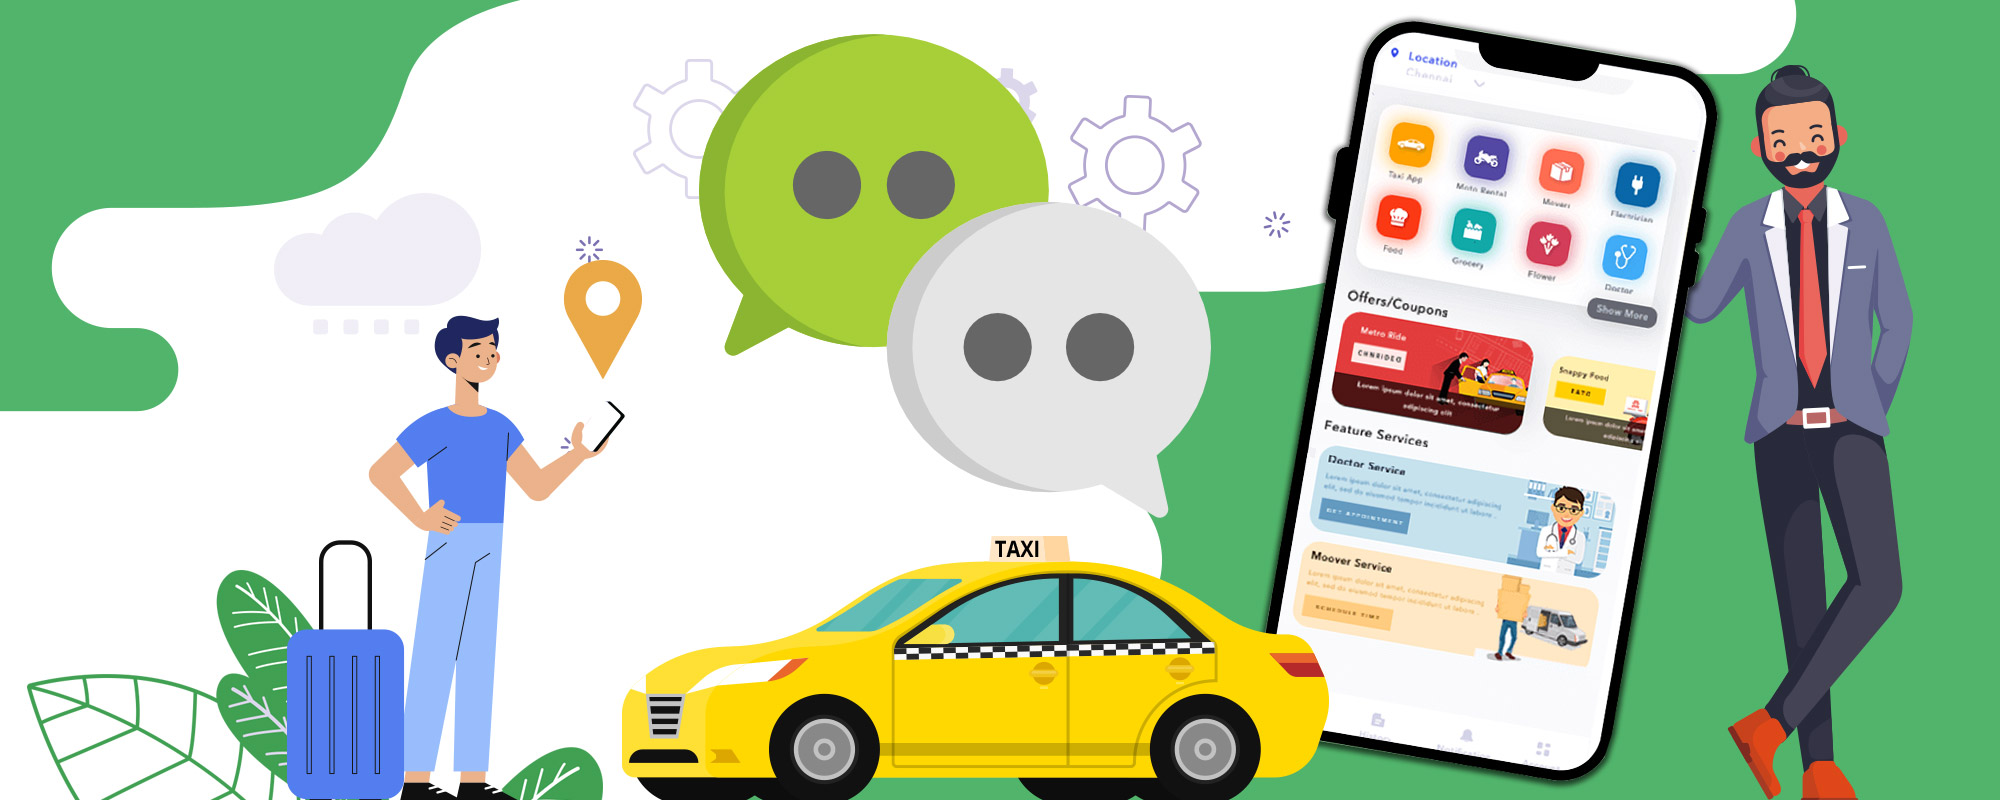 Launch Super app like Gojek, WeChat, Grab